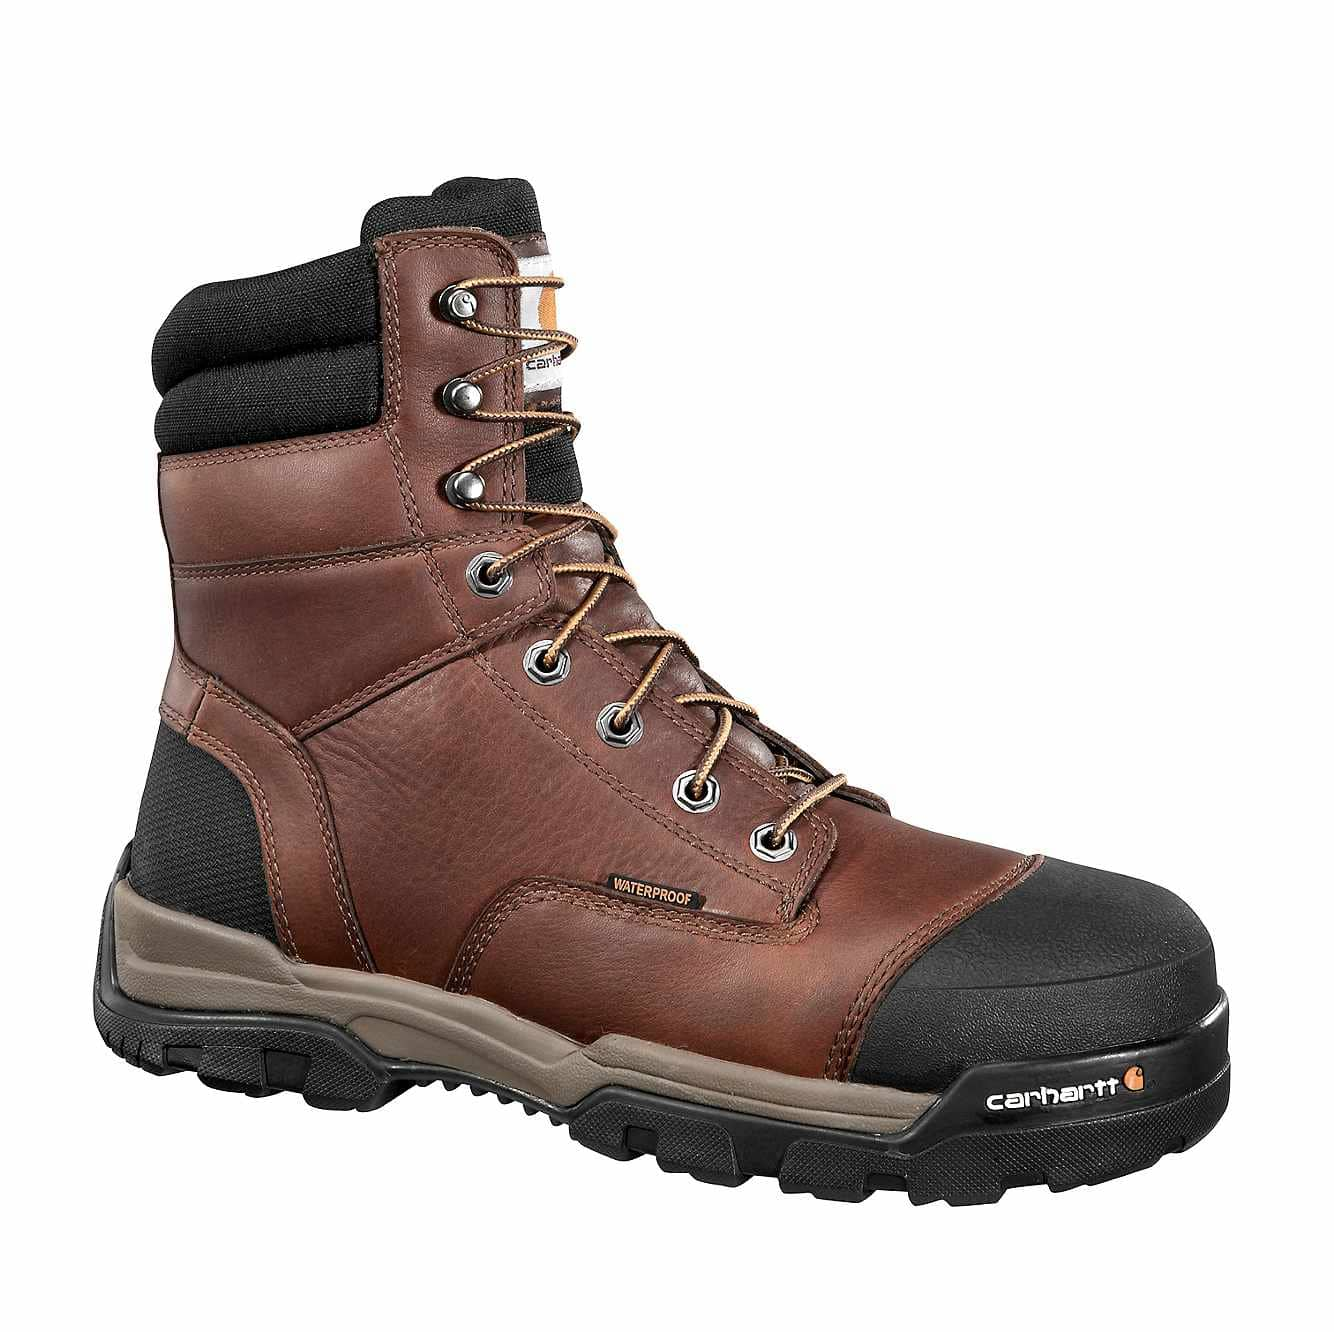 "Men's Carhartt Ground Force 8"" Composite Toe Work Boots, CME8355"